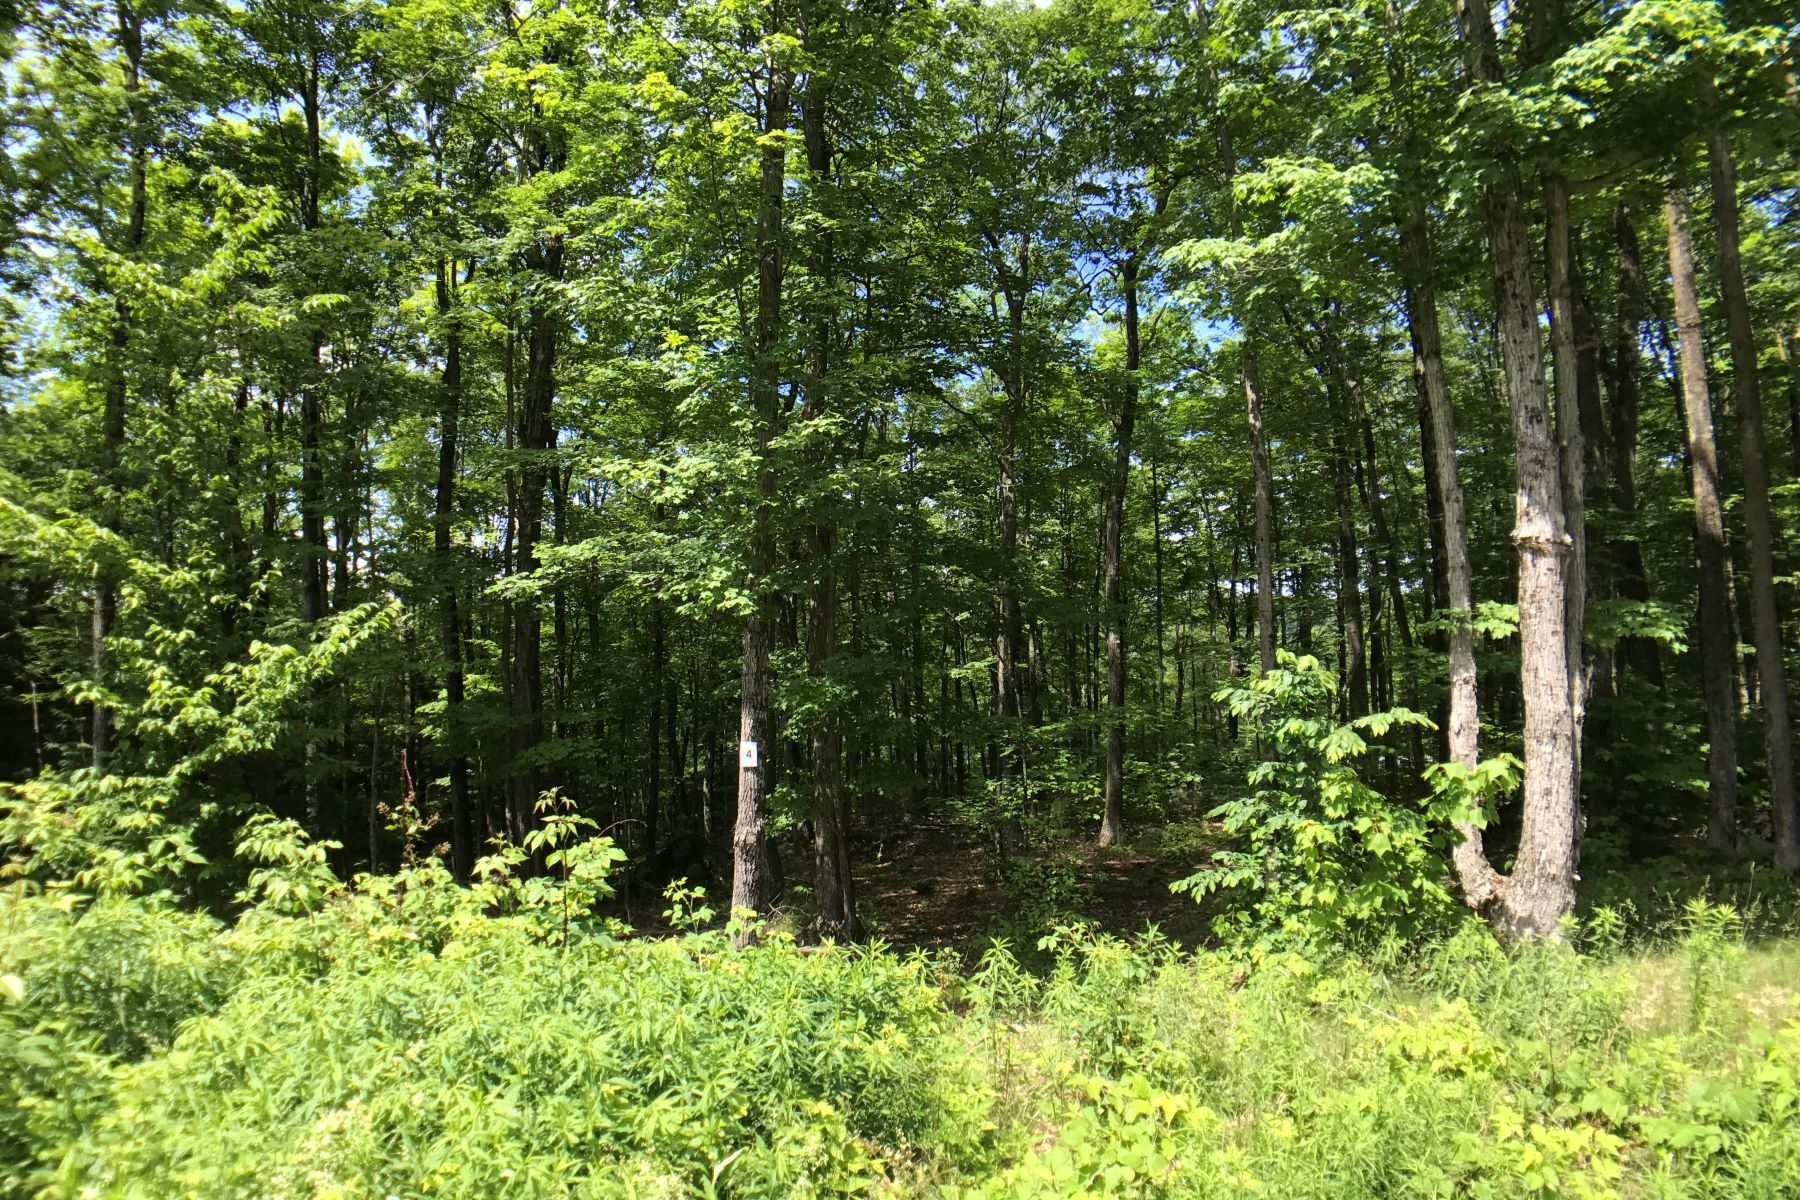 Terreno por un Venta en Affordable Ready-to-Build Parcel with Shared Waterfront Access Lot #4, Moose Dr Lee, Massachusetts, 01238 Estados Unidos